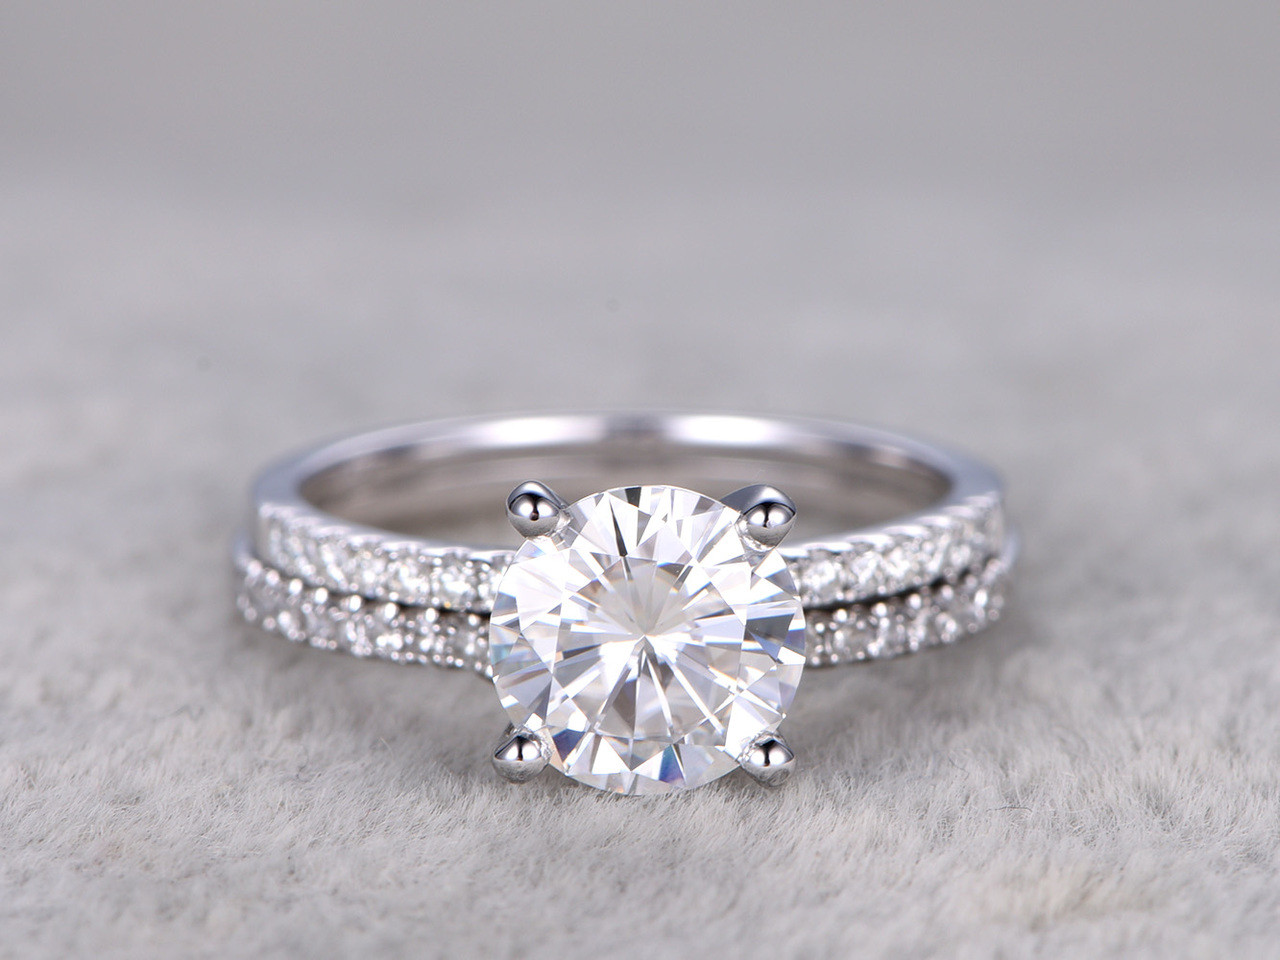 and relaxing chicago wedding jewelers to our rings sex engagment diamond custom all open professional bands co offer designs jewelry martin same a engagement we atmosphere m